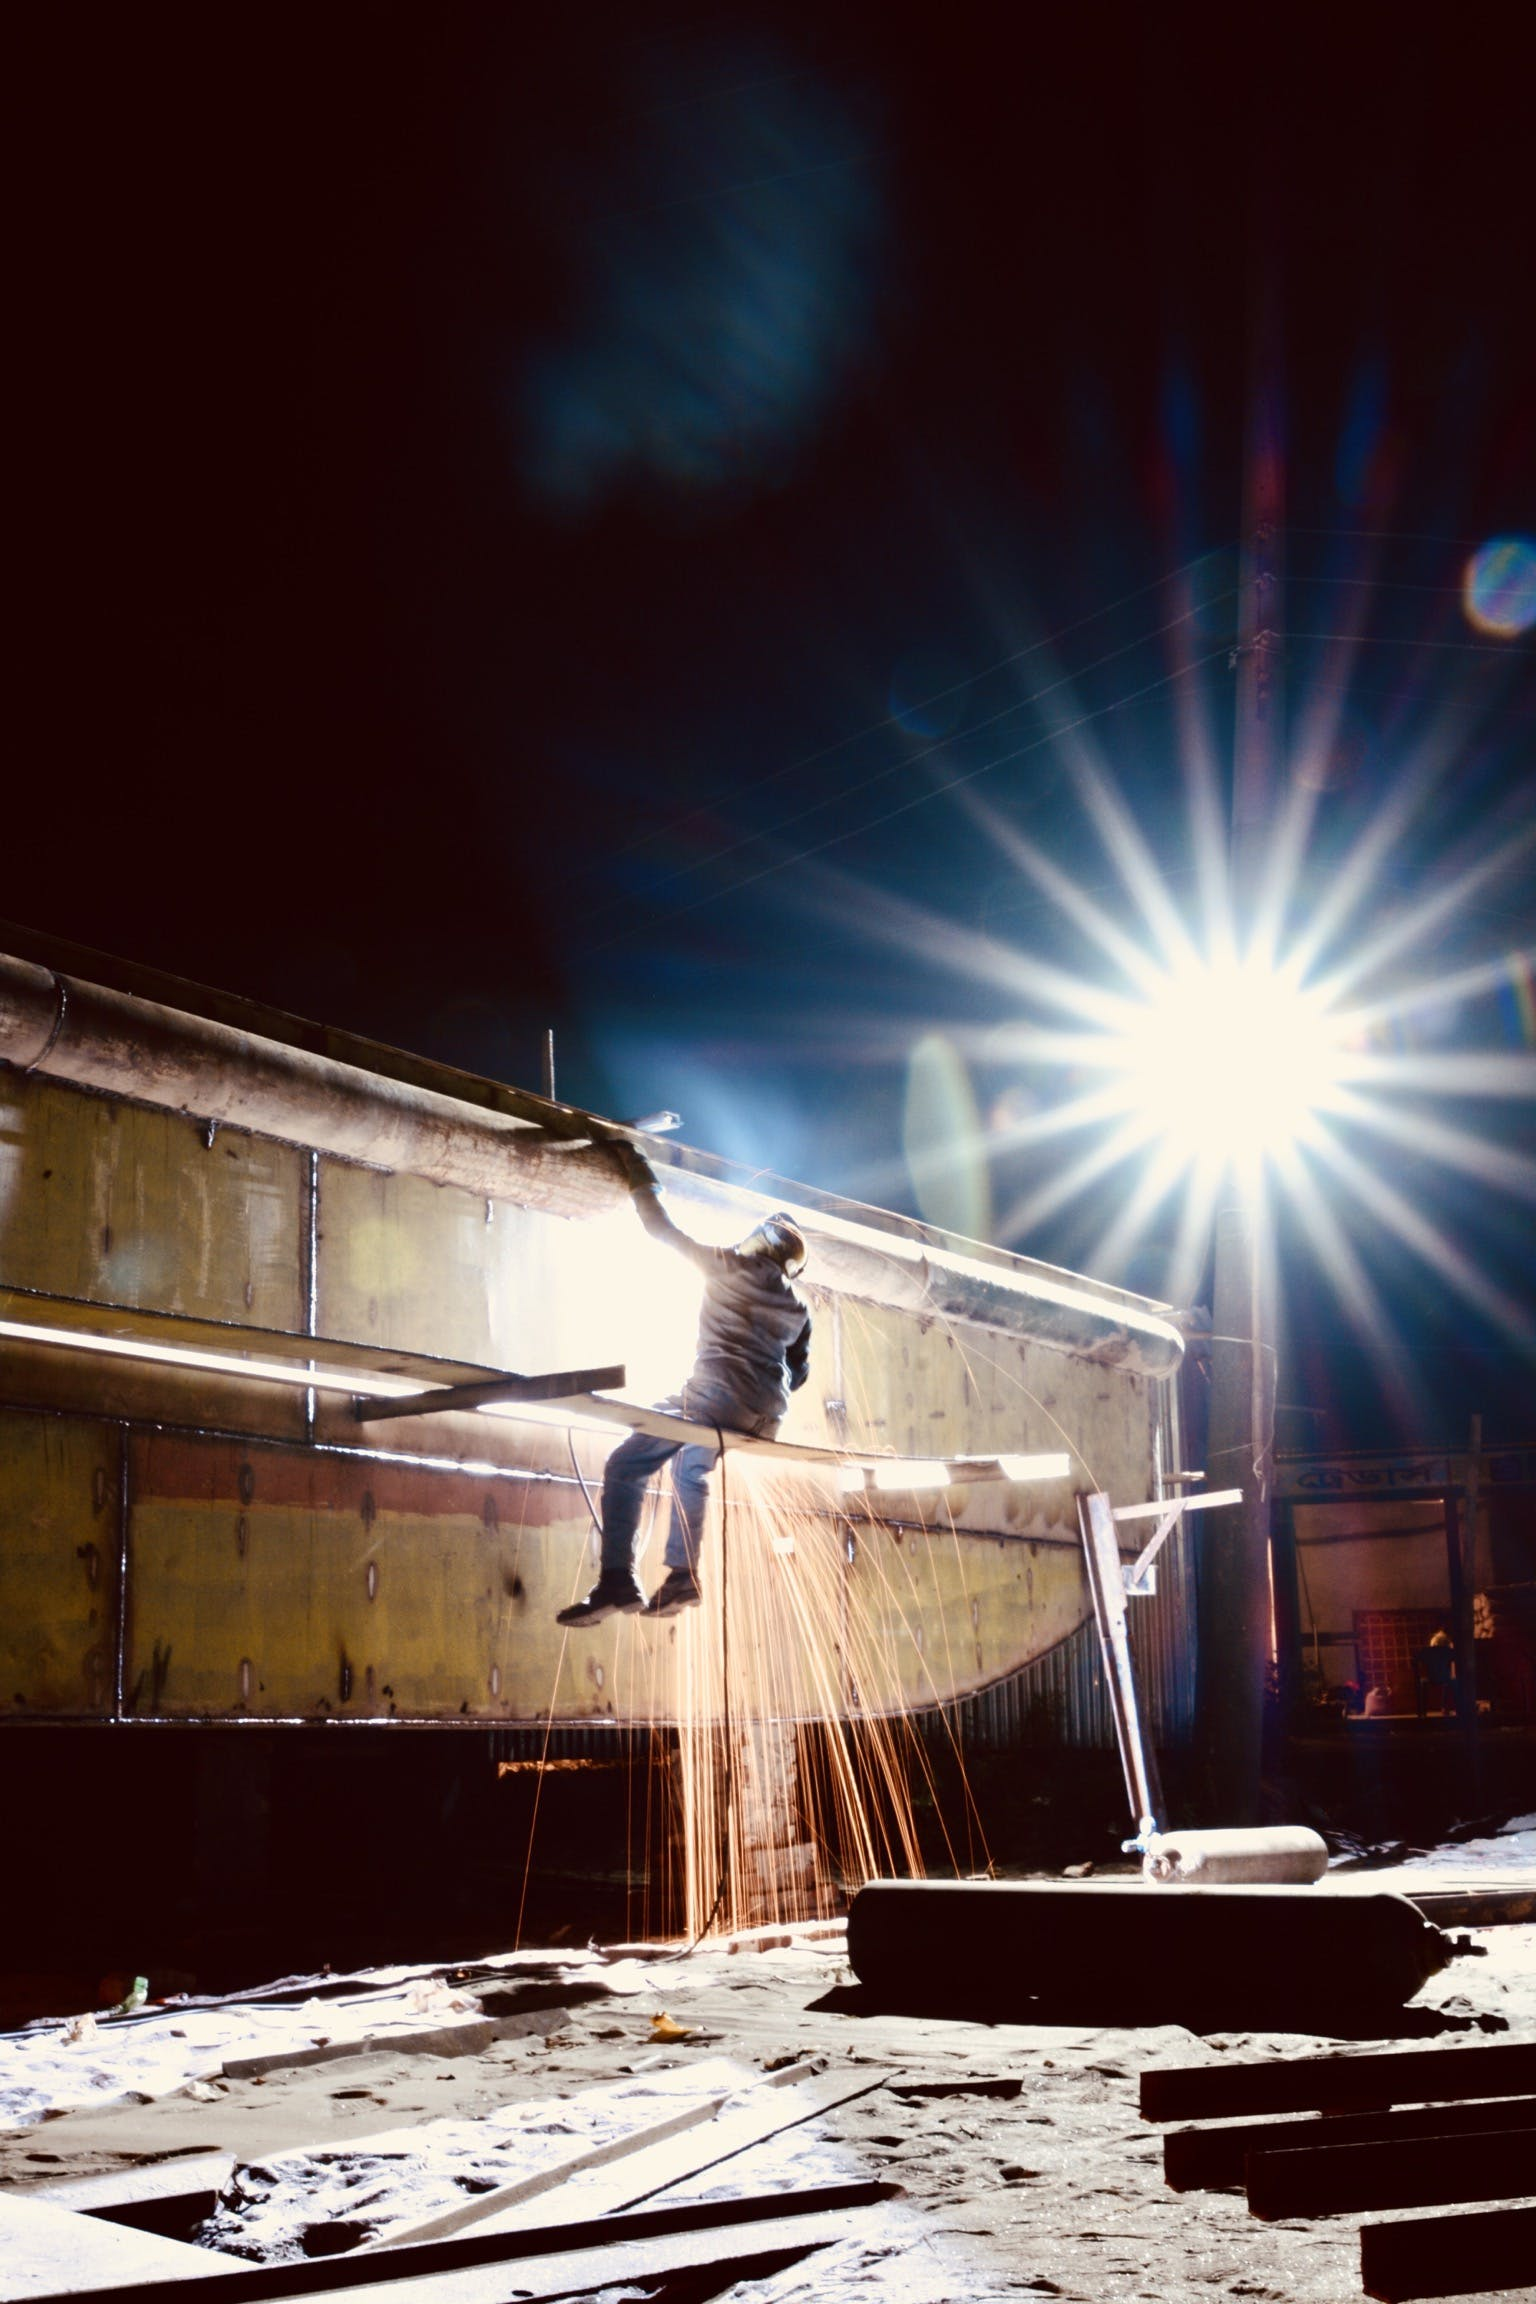 Free stock photo of construction workers, exposure, night life, night lights